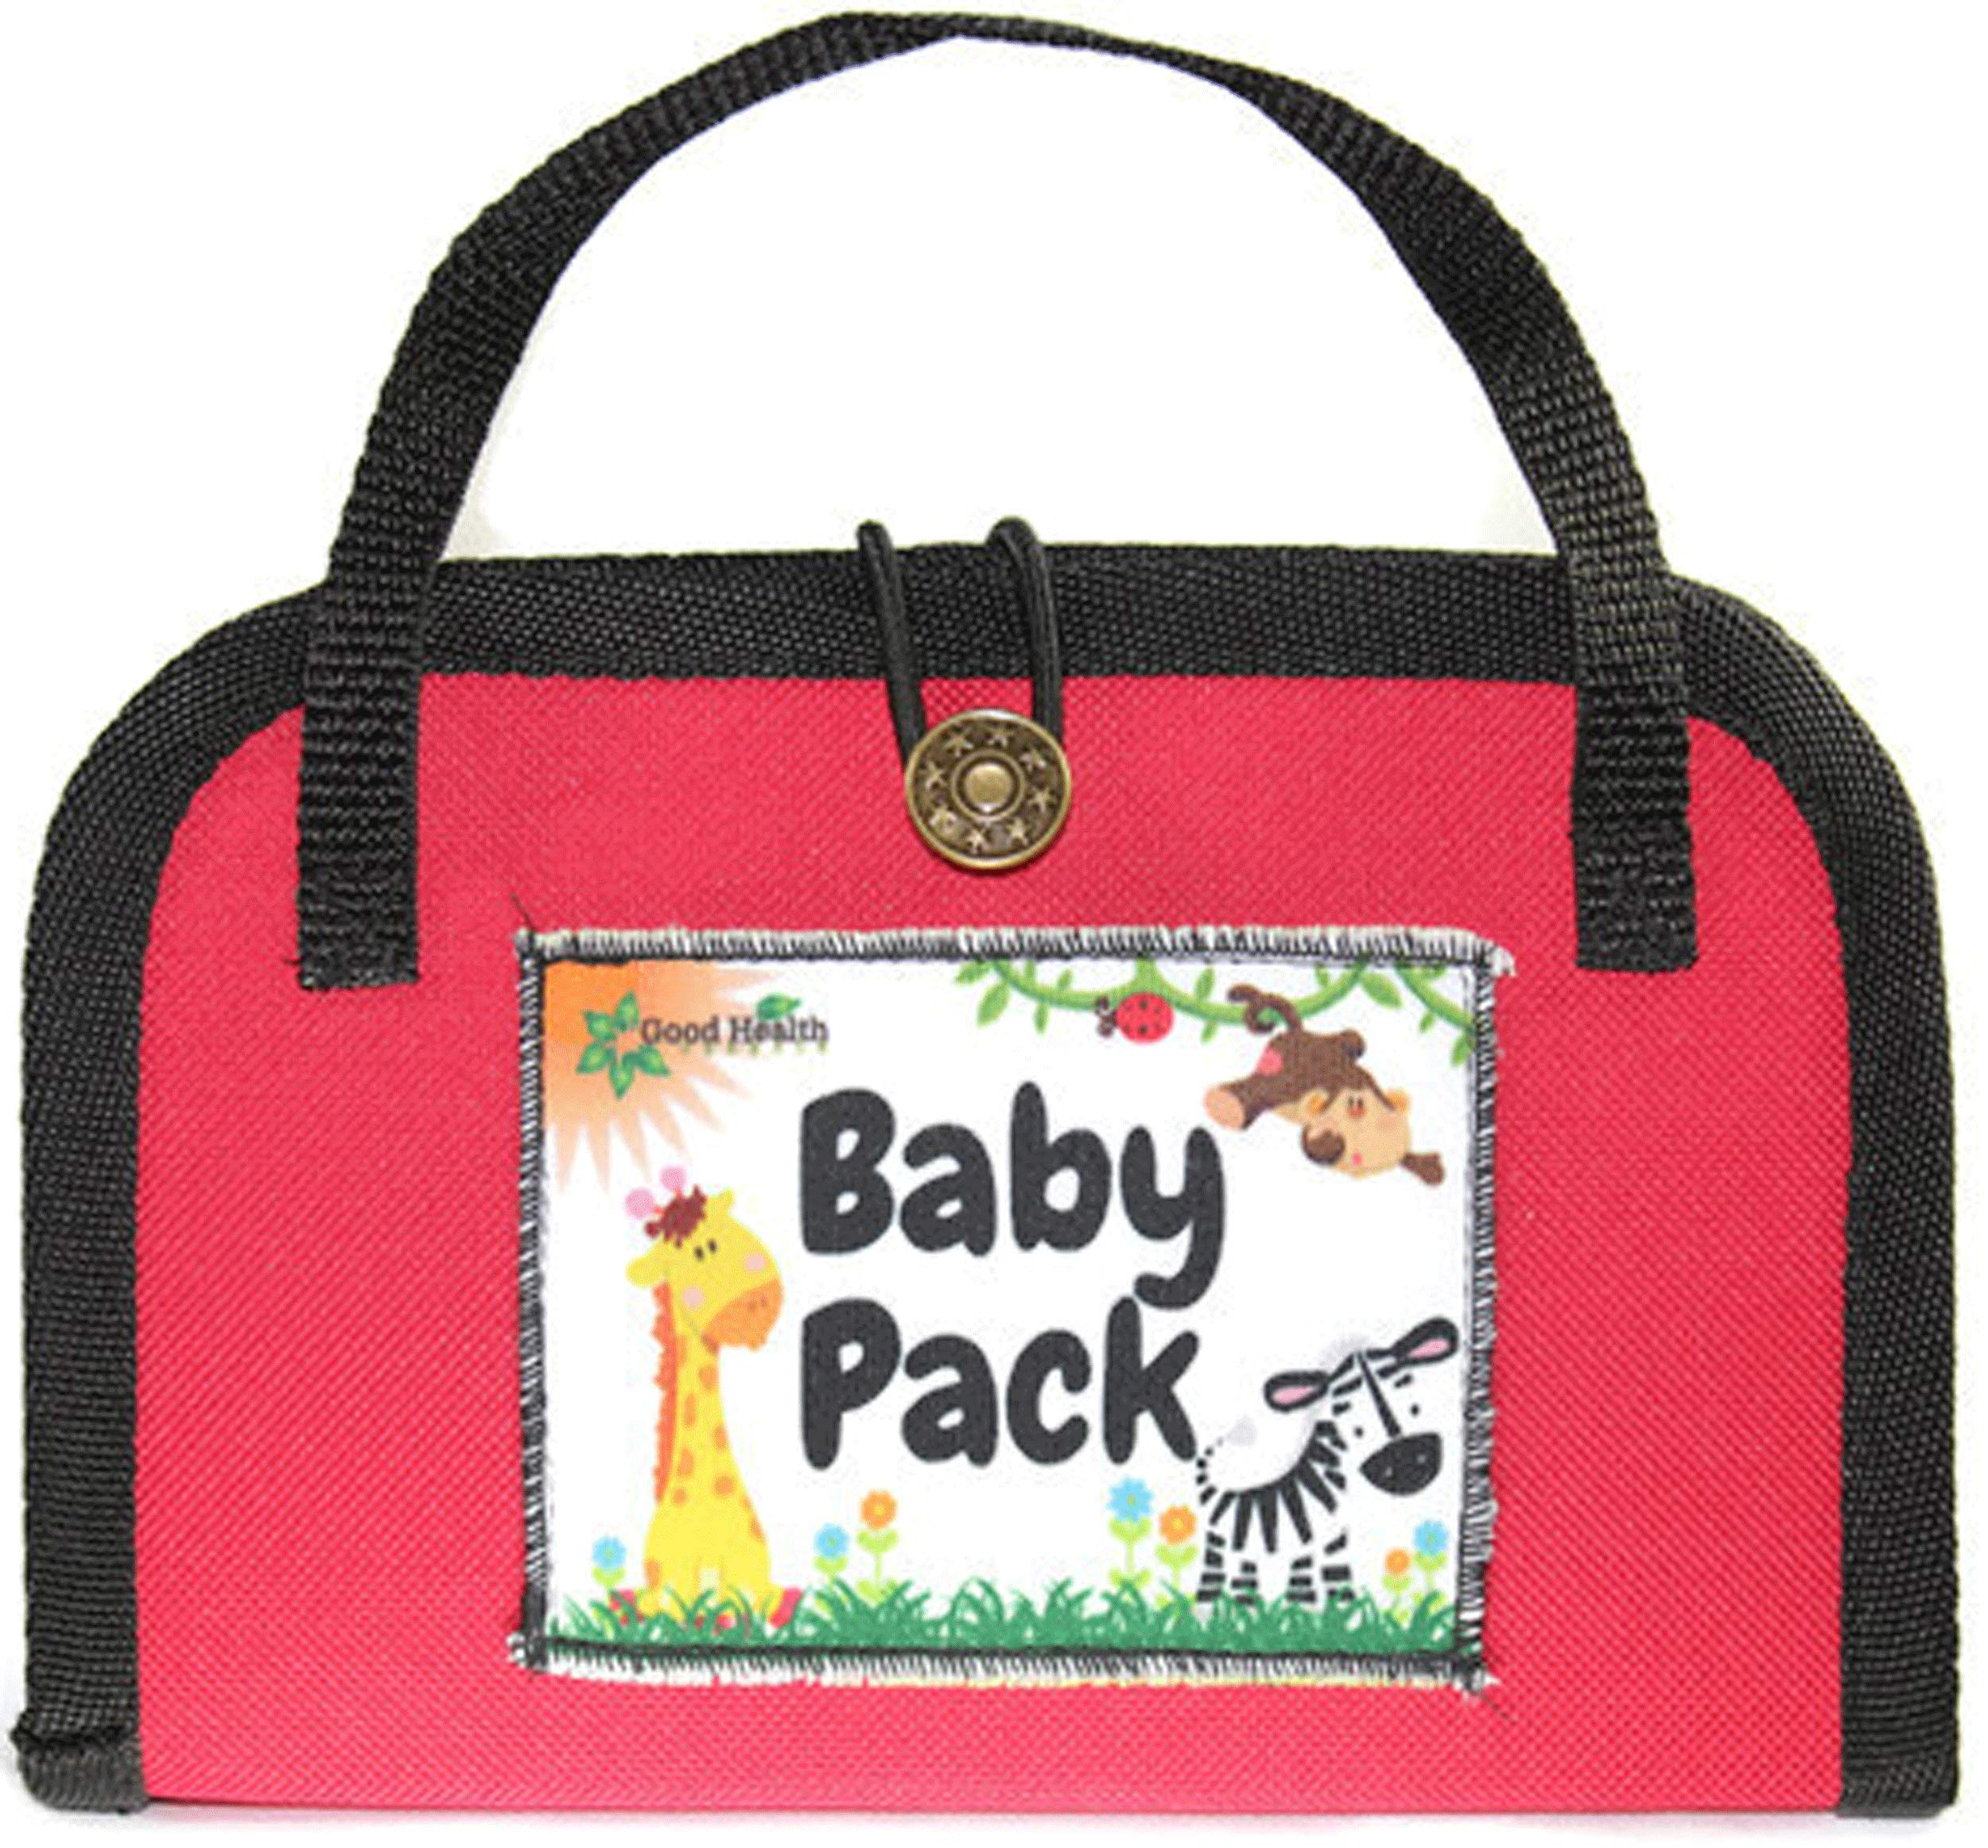 Baby Pack - Healthy Baby Kit with Ear Oil, Teething Oil - Calming, Child Anti-Bio, Breath Easy Tinctures - by Good Health Herbals (Red) by Good Health Herbals